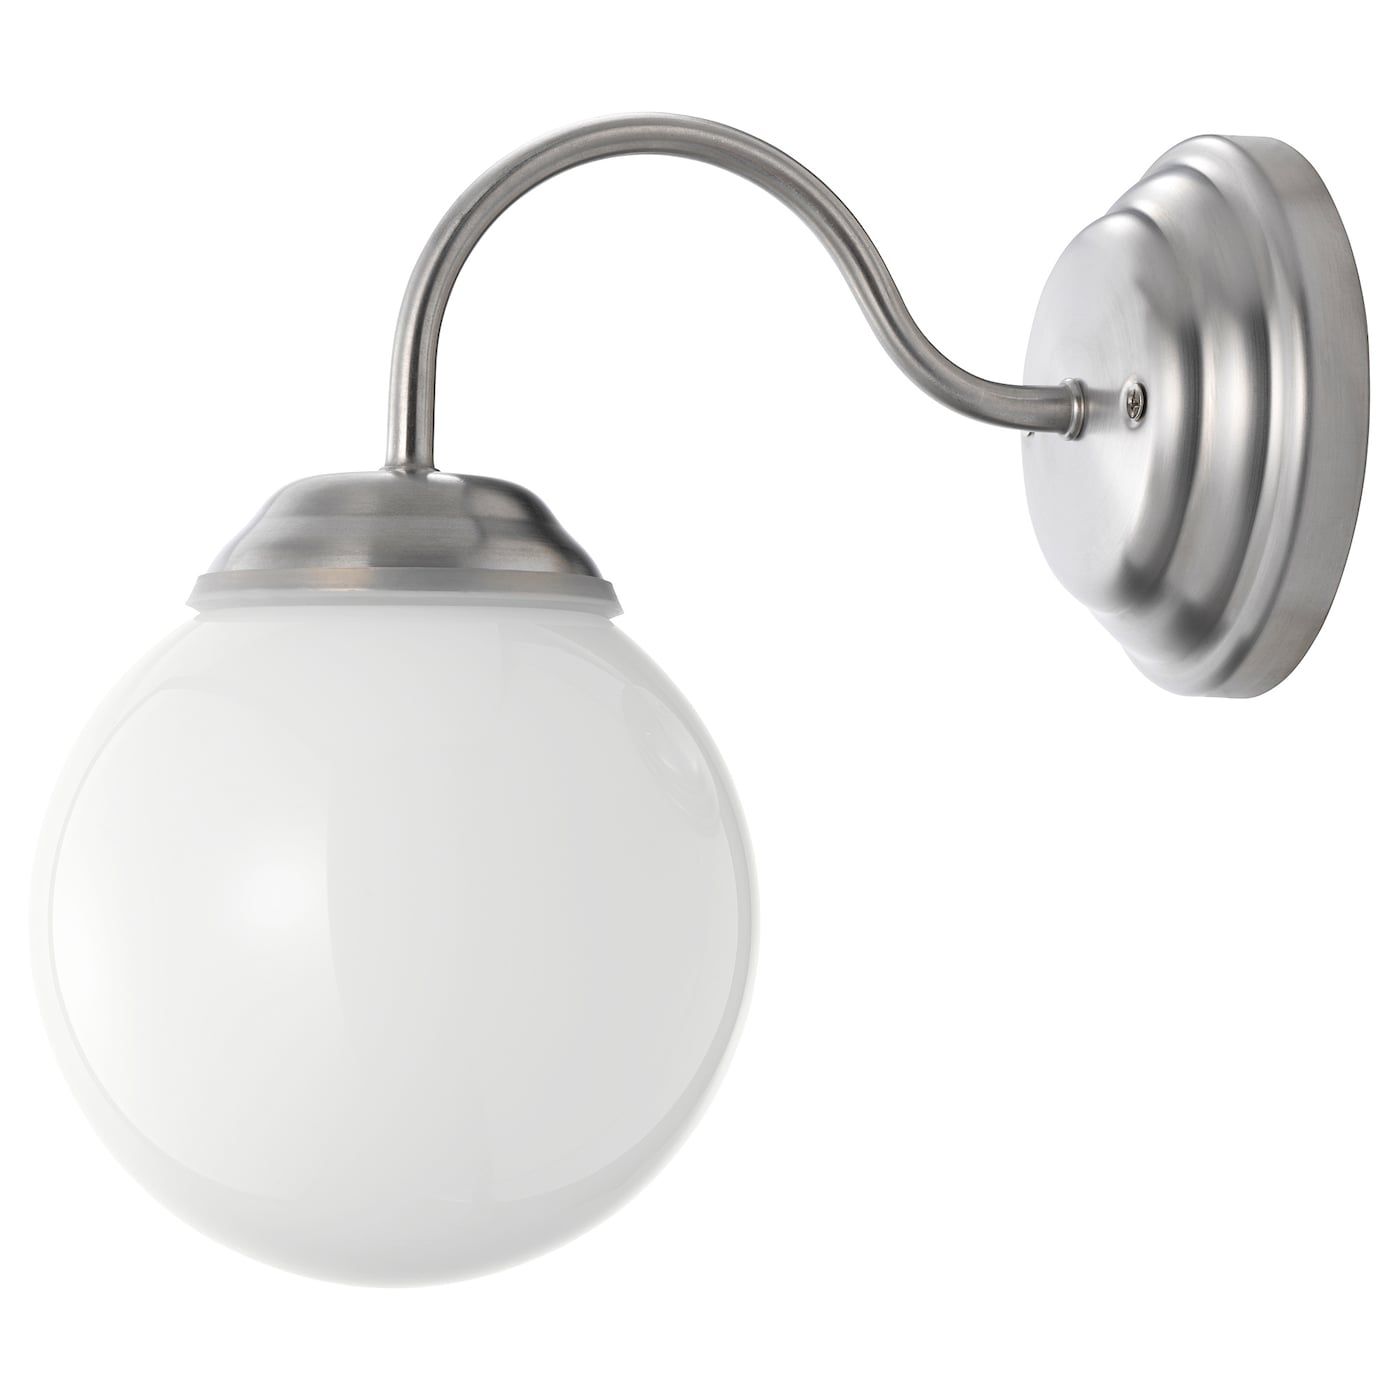 IKEA LILLHOLMEN wall lamp Flexible; can be mounted with the light turned downwards or upwards.